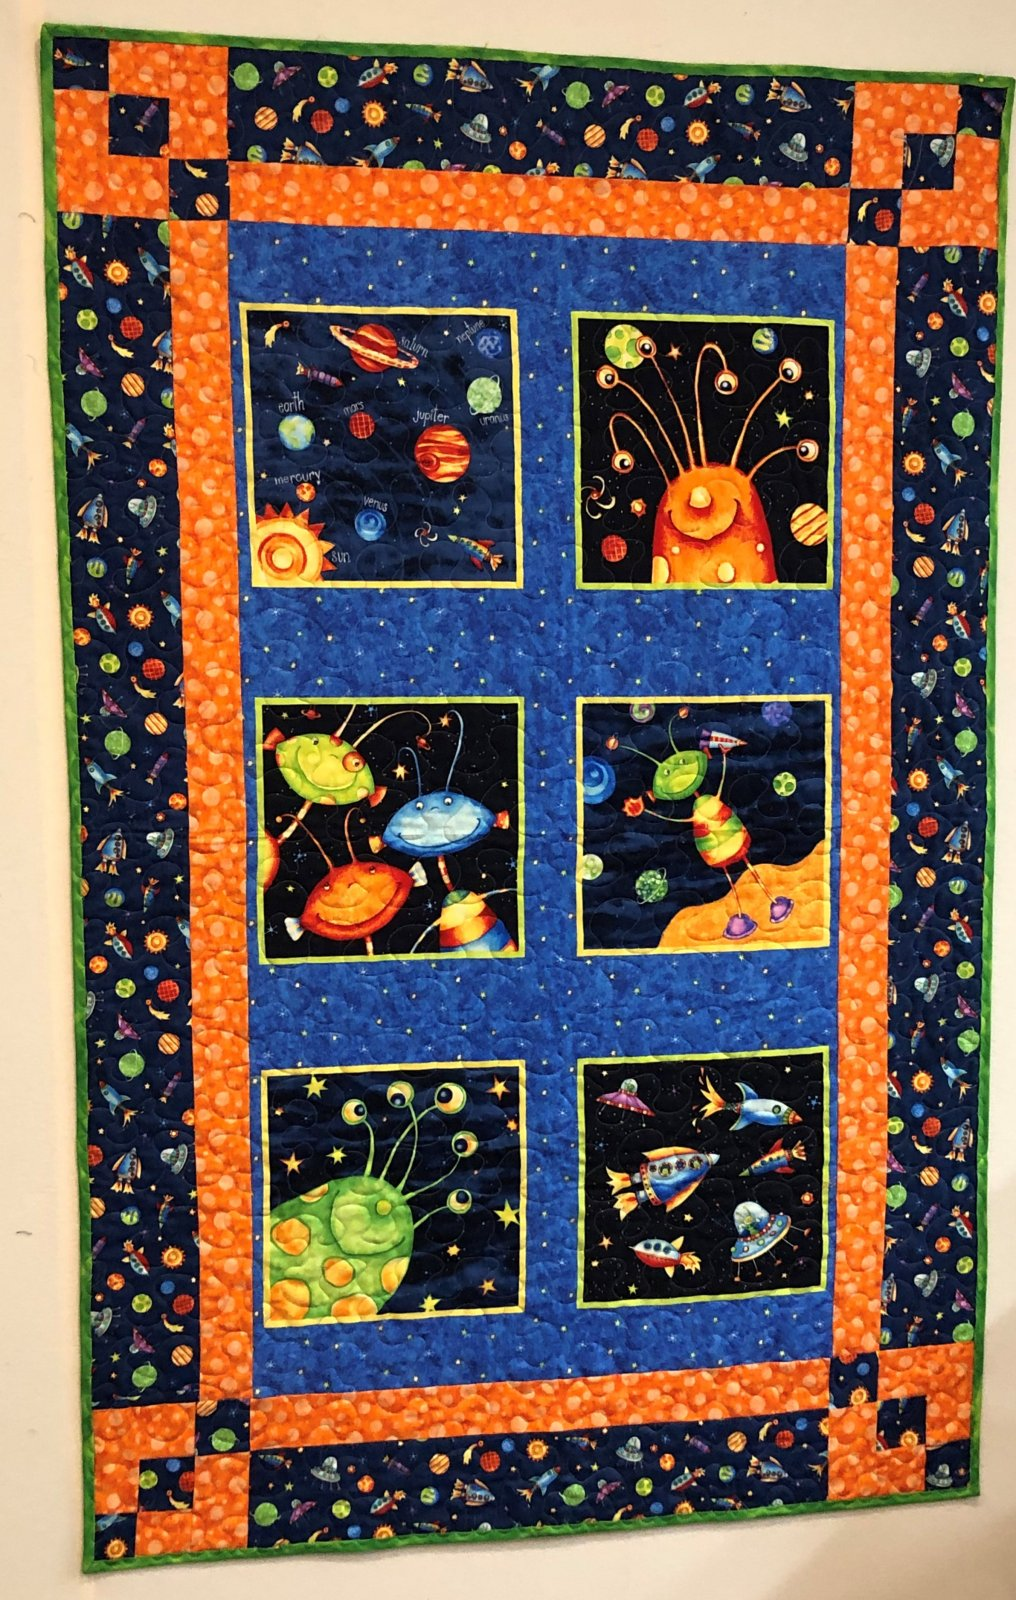 Super Spacey Quilt Kit 34 x 54 P&B Textiles